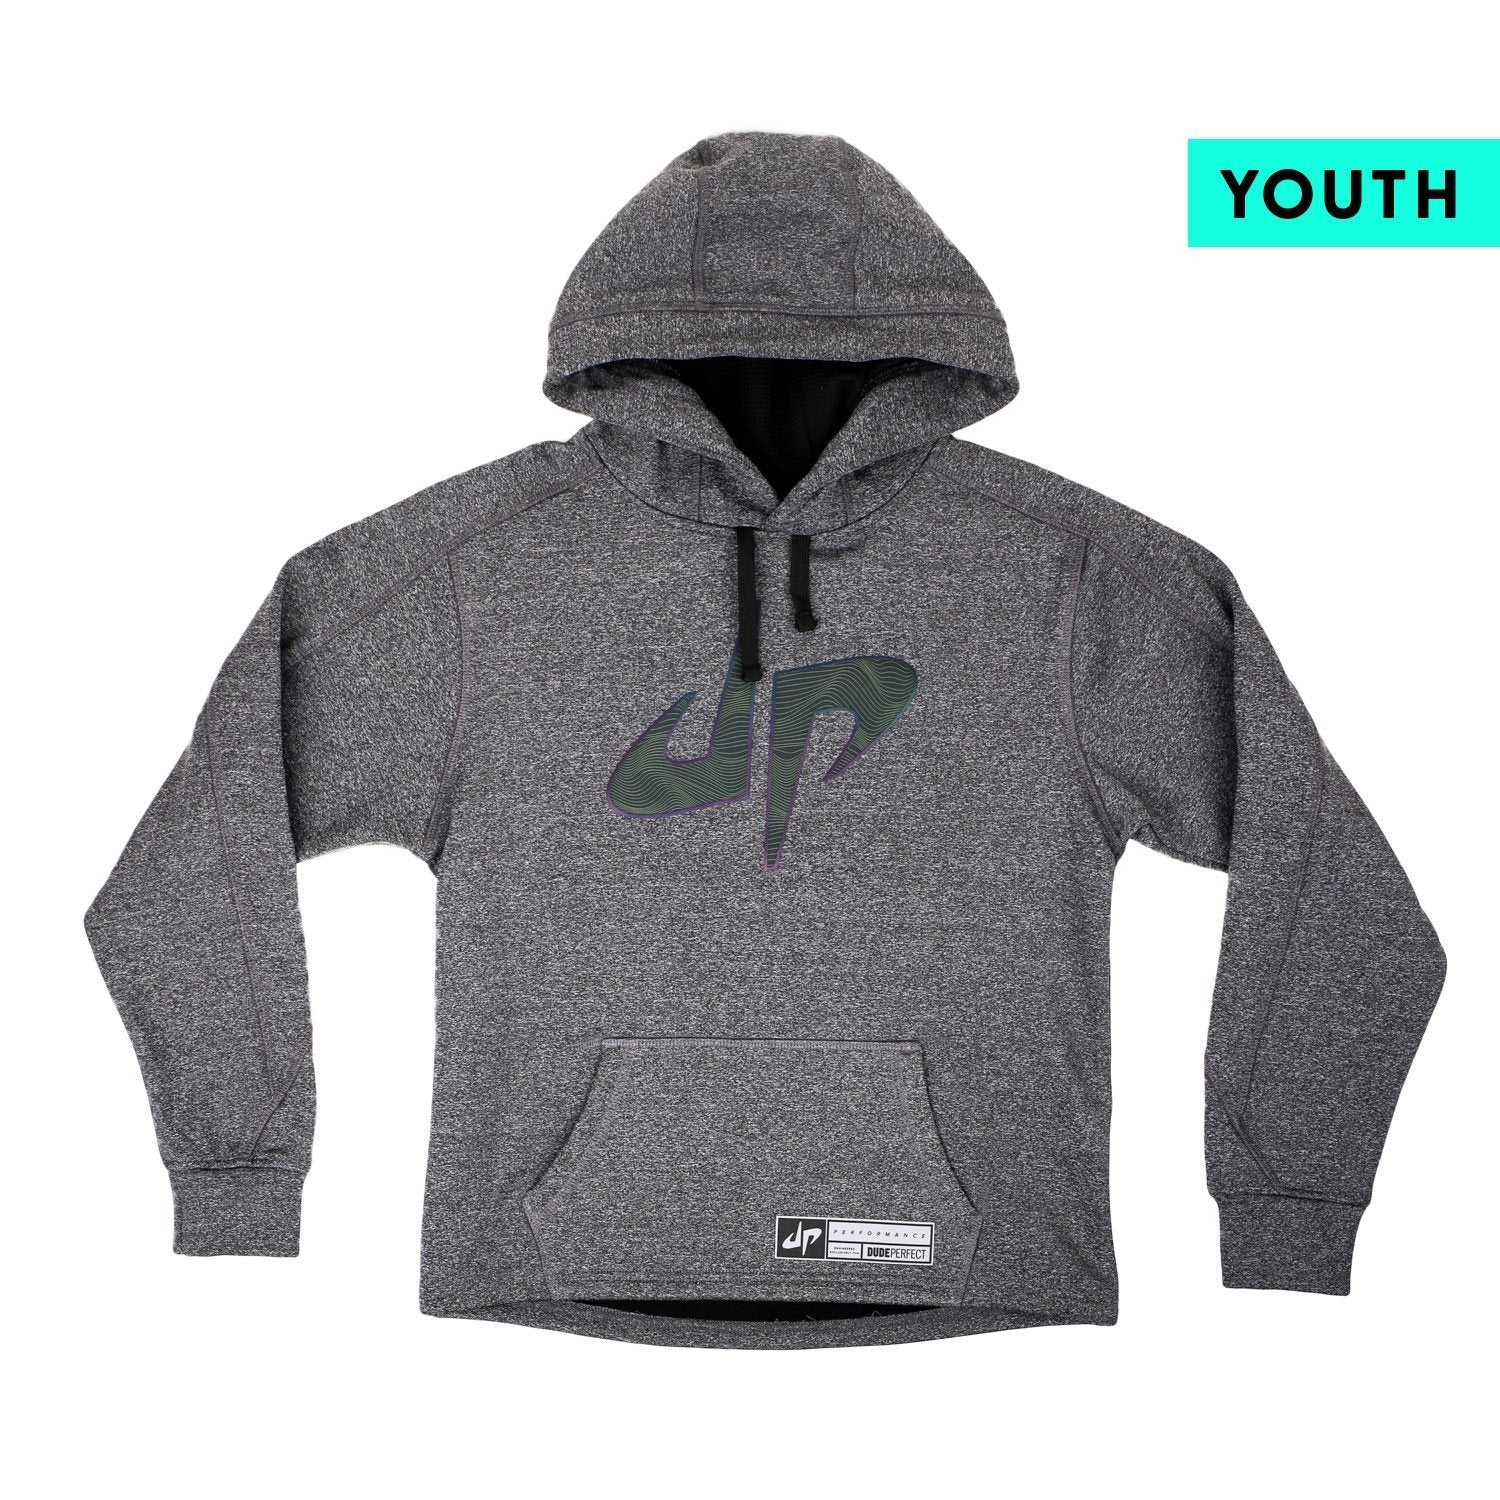 Youth Battles Charcoal Spectrum Reflective Performance Hoodie